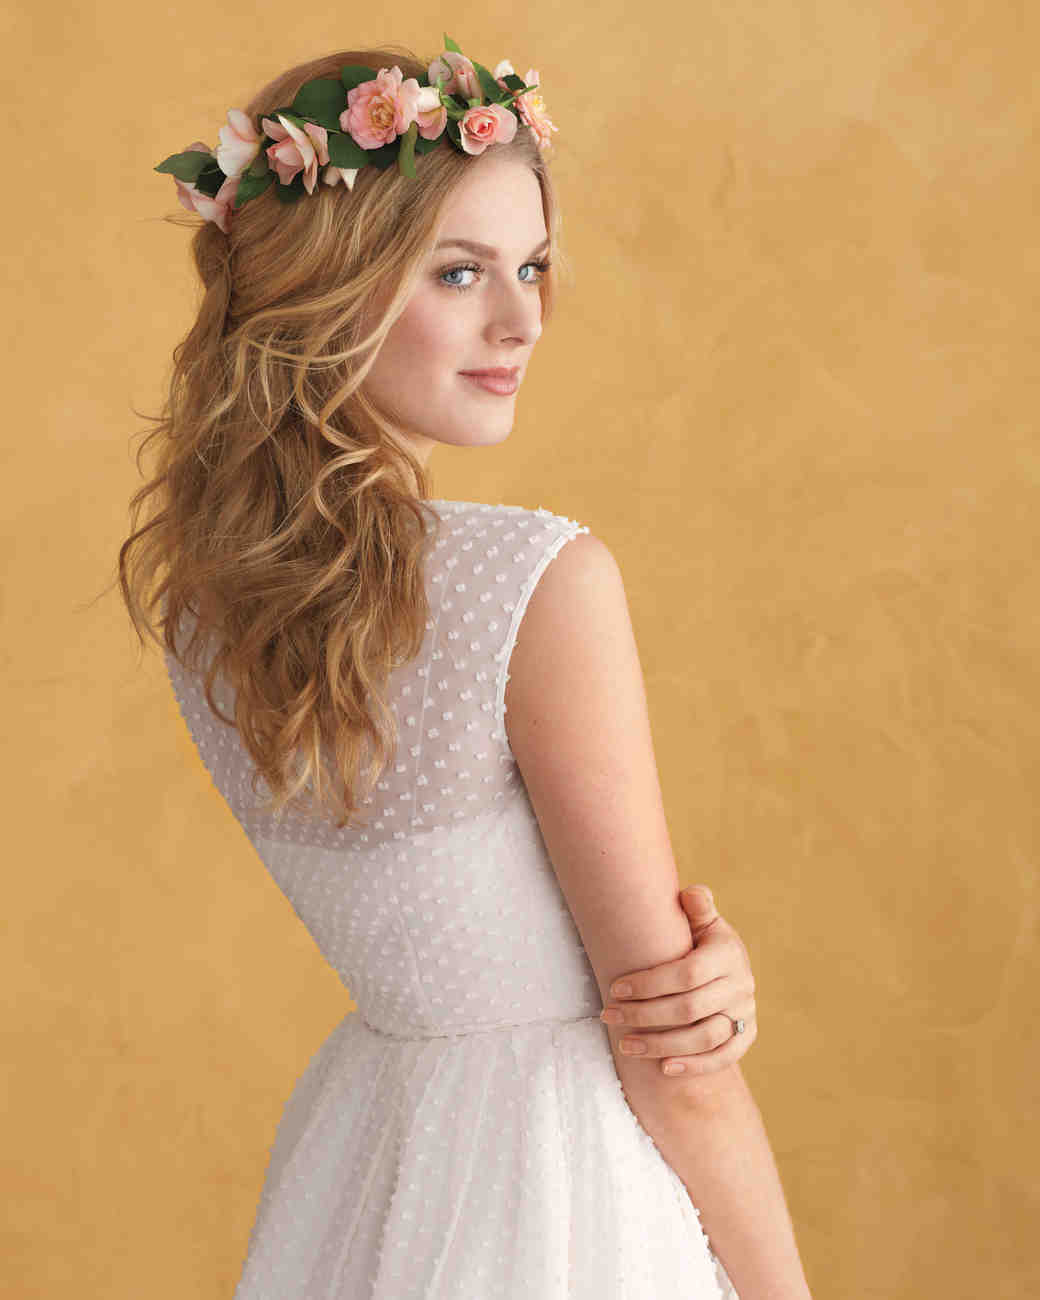 Wedding Hairstyle Photos: Floral Wedding Hairstyles